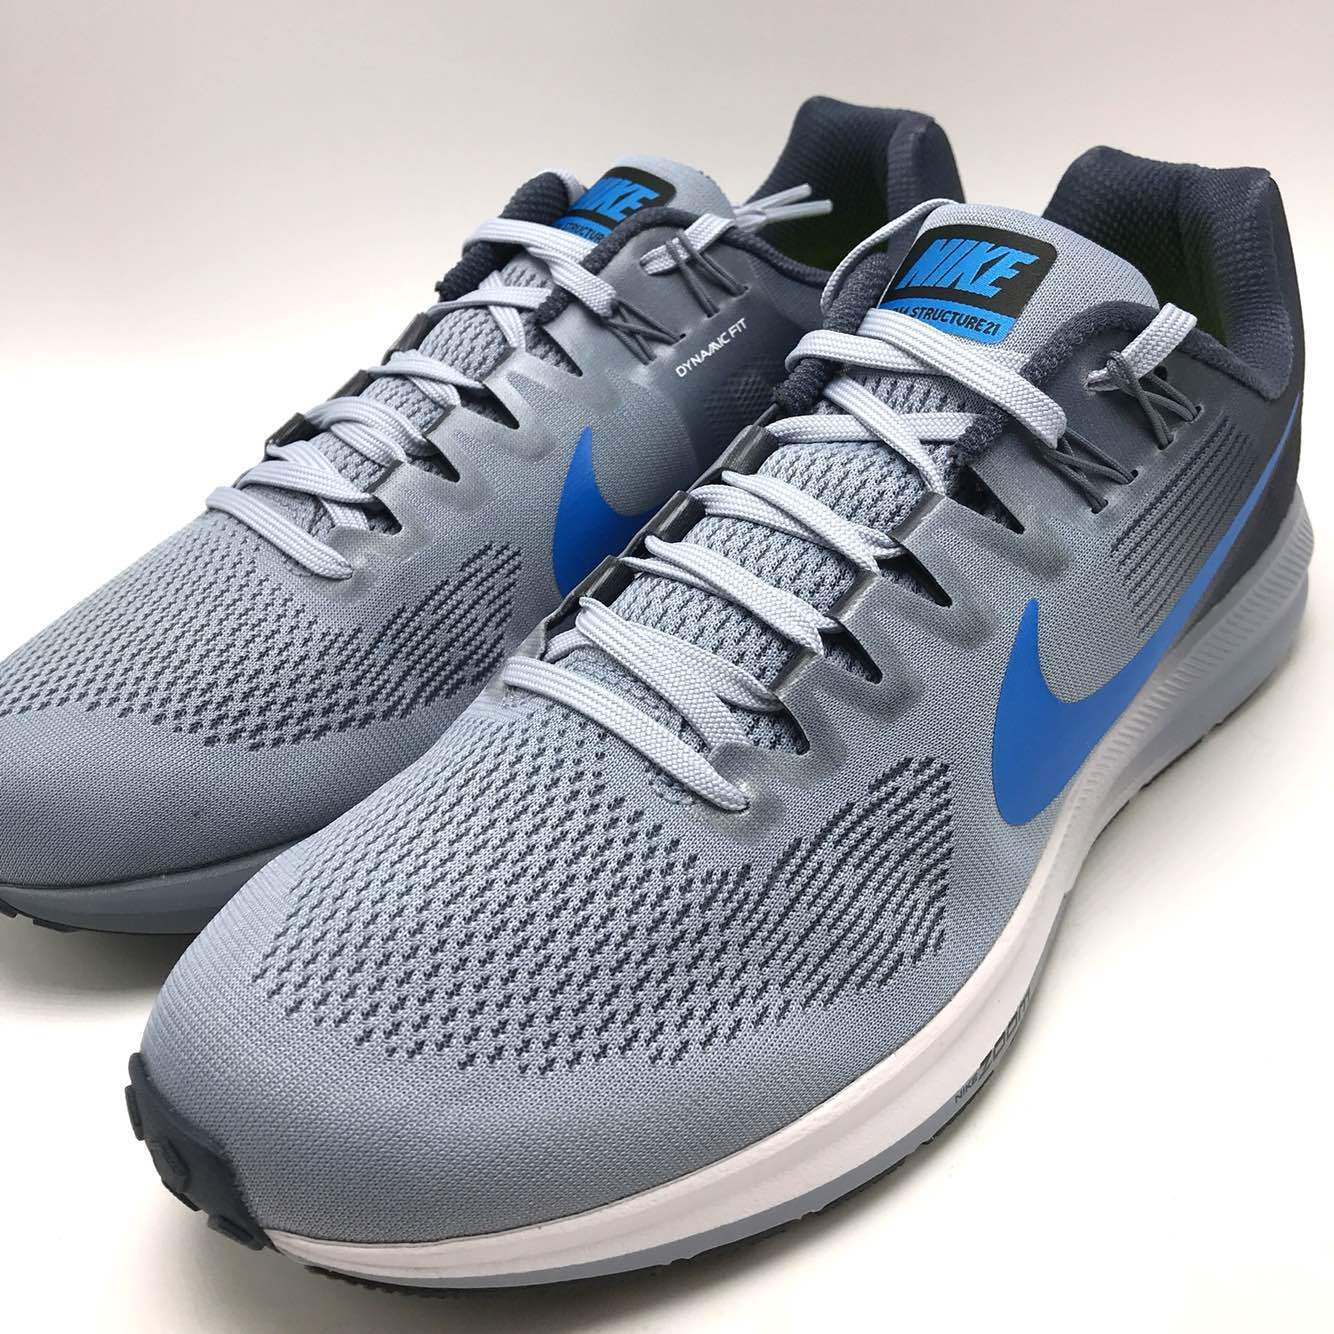 Nike Air Zoom Grey/Photo Structure 21 Men's Running Glacier Grey/Photo Zoom Blue 904695-002 a31b69